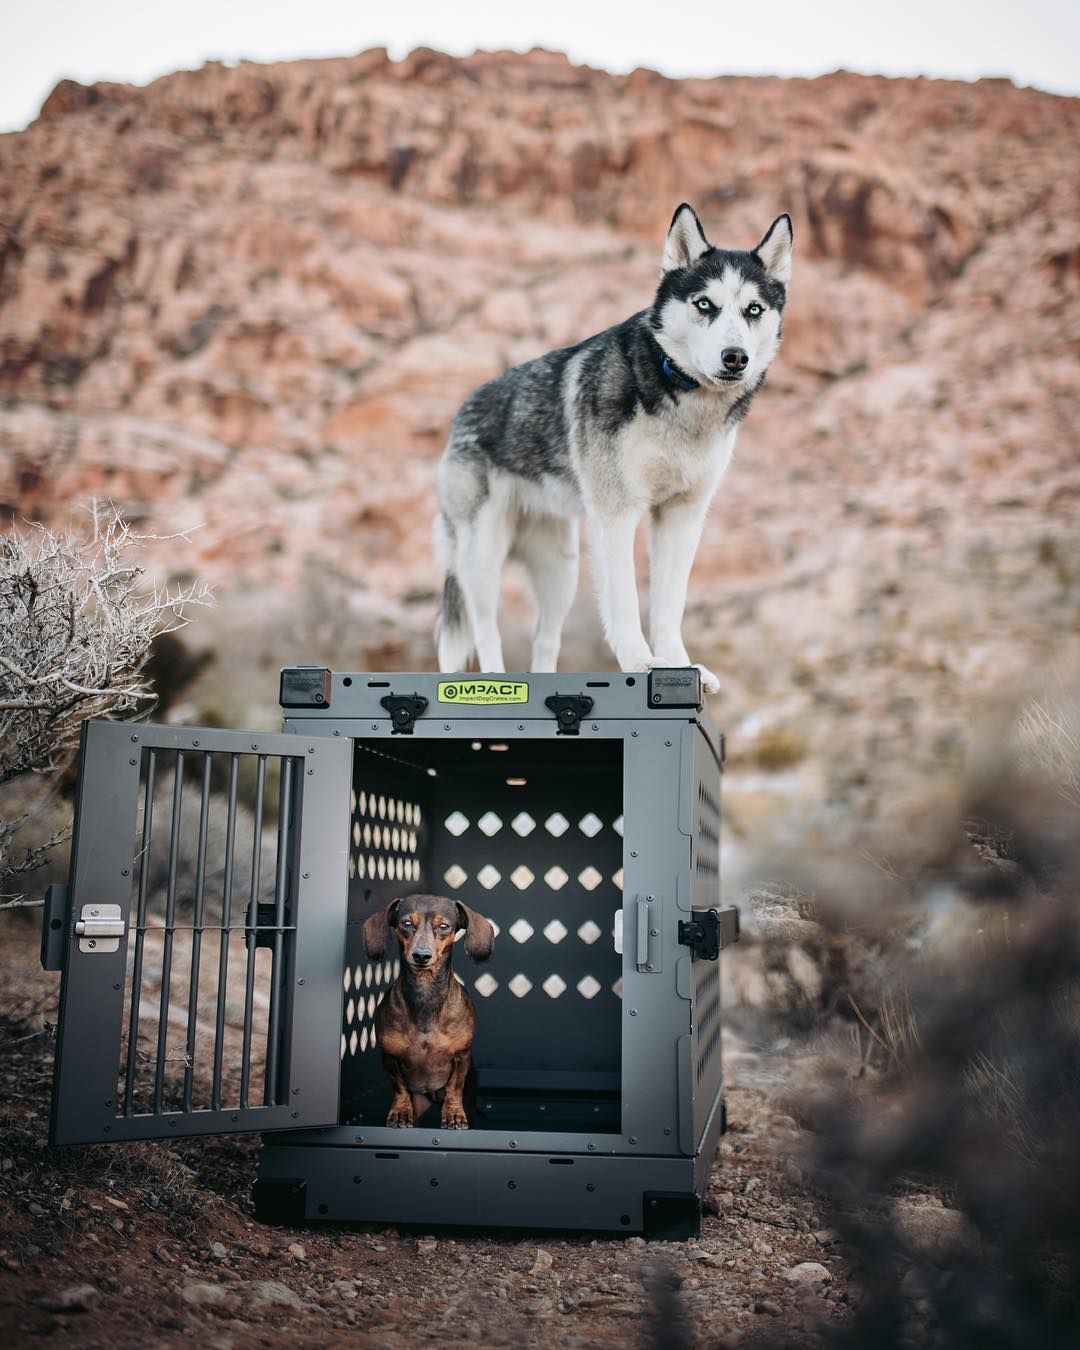 Impact Dog Crates On Instagram Kenai Caught A Wild Dachshund Wants To Know If She Can Keep Him Pawsupwest Dog Adventure Dogs Dog Crate